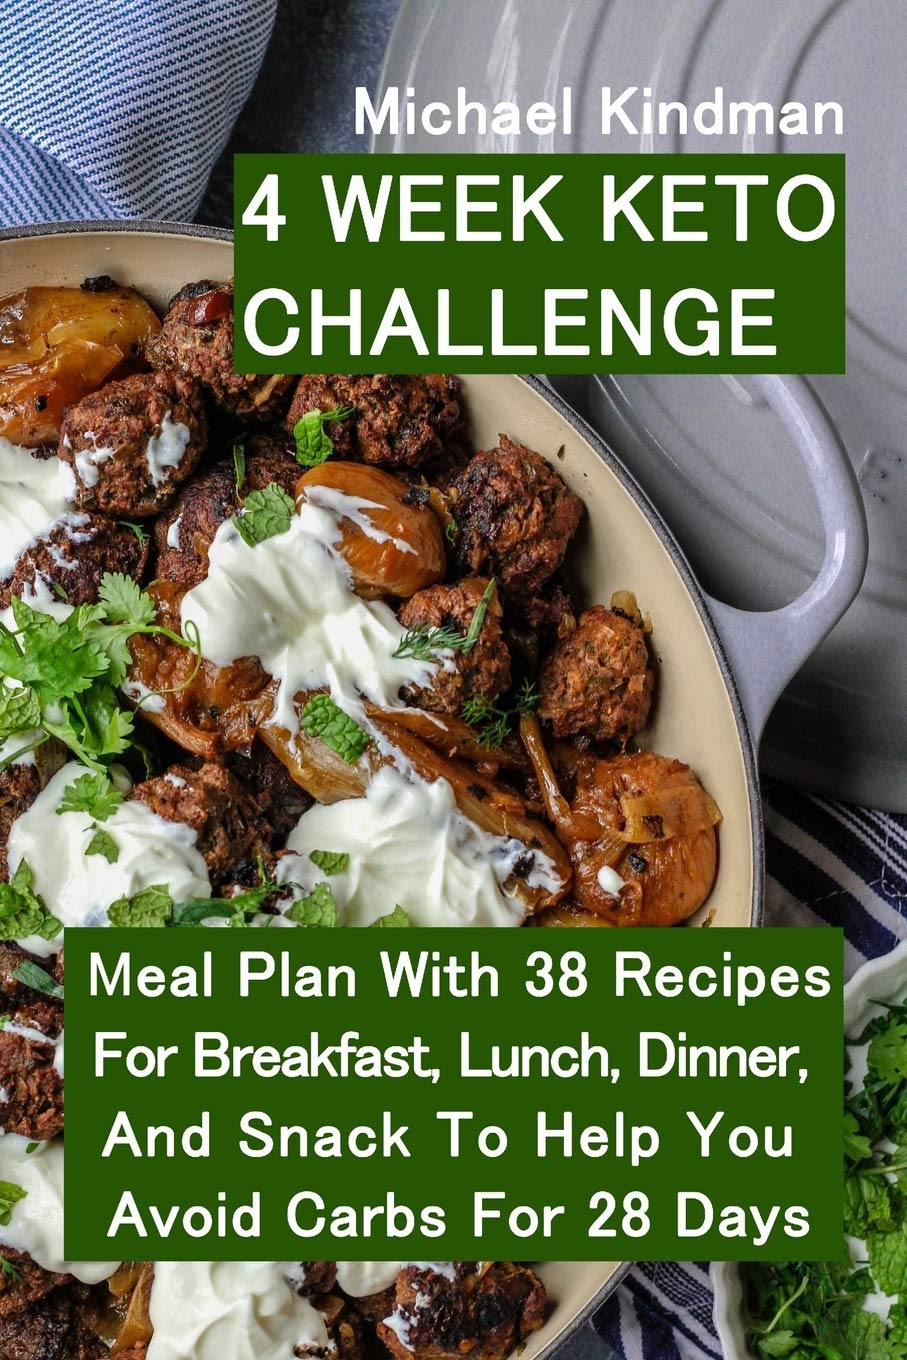 4 Week Keto Challenge Meal Plan With 38 Recipes For Breakfast Lunch Dinner And Snack To Help You Avoid Carbs For 28 Days Kindman Michael 9781095686621 Amazon Com Books